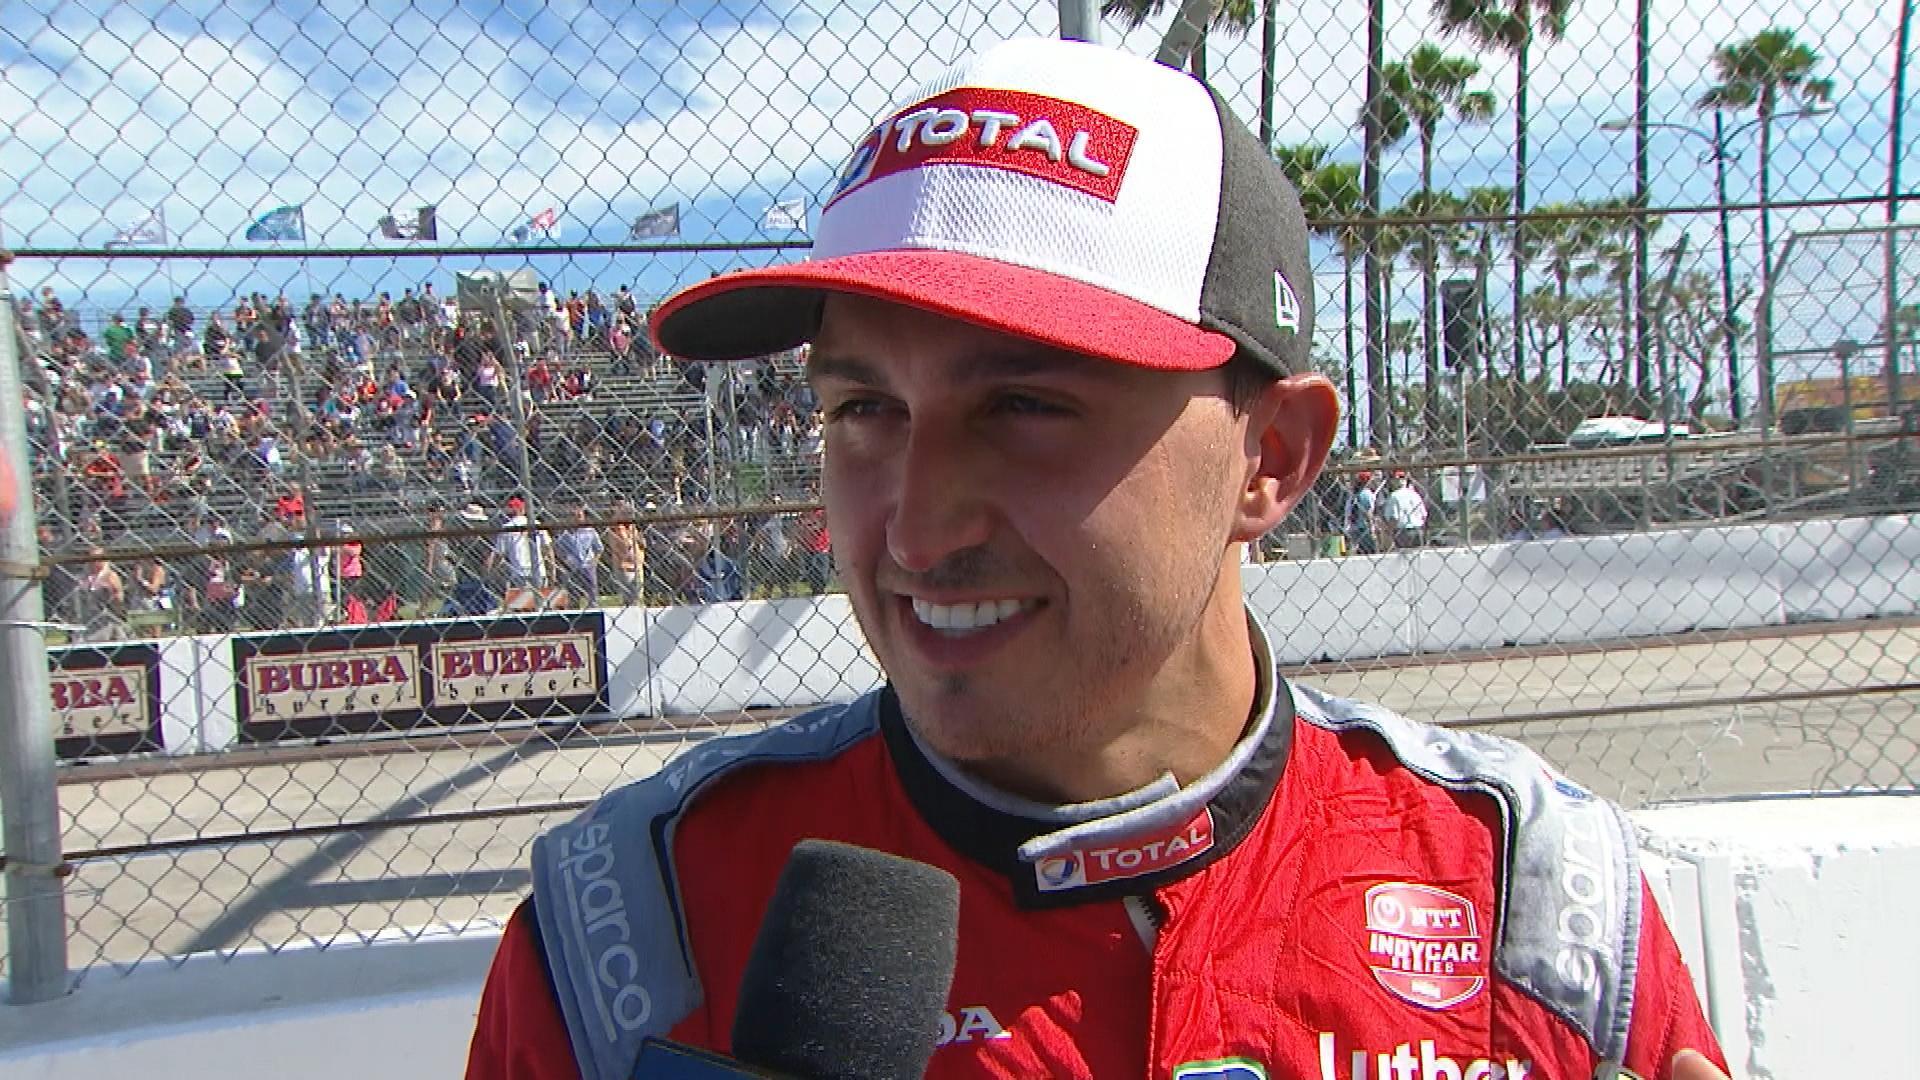 Graham Rahal fourth at Long Beach after IndyCar imposes penalty